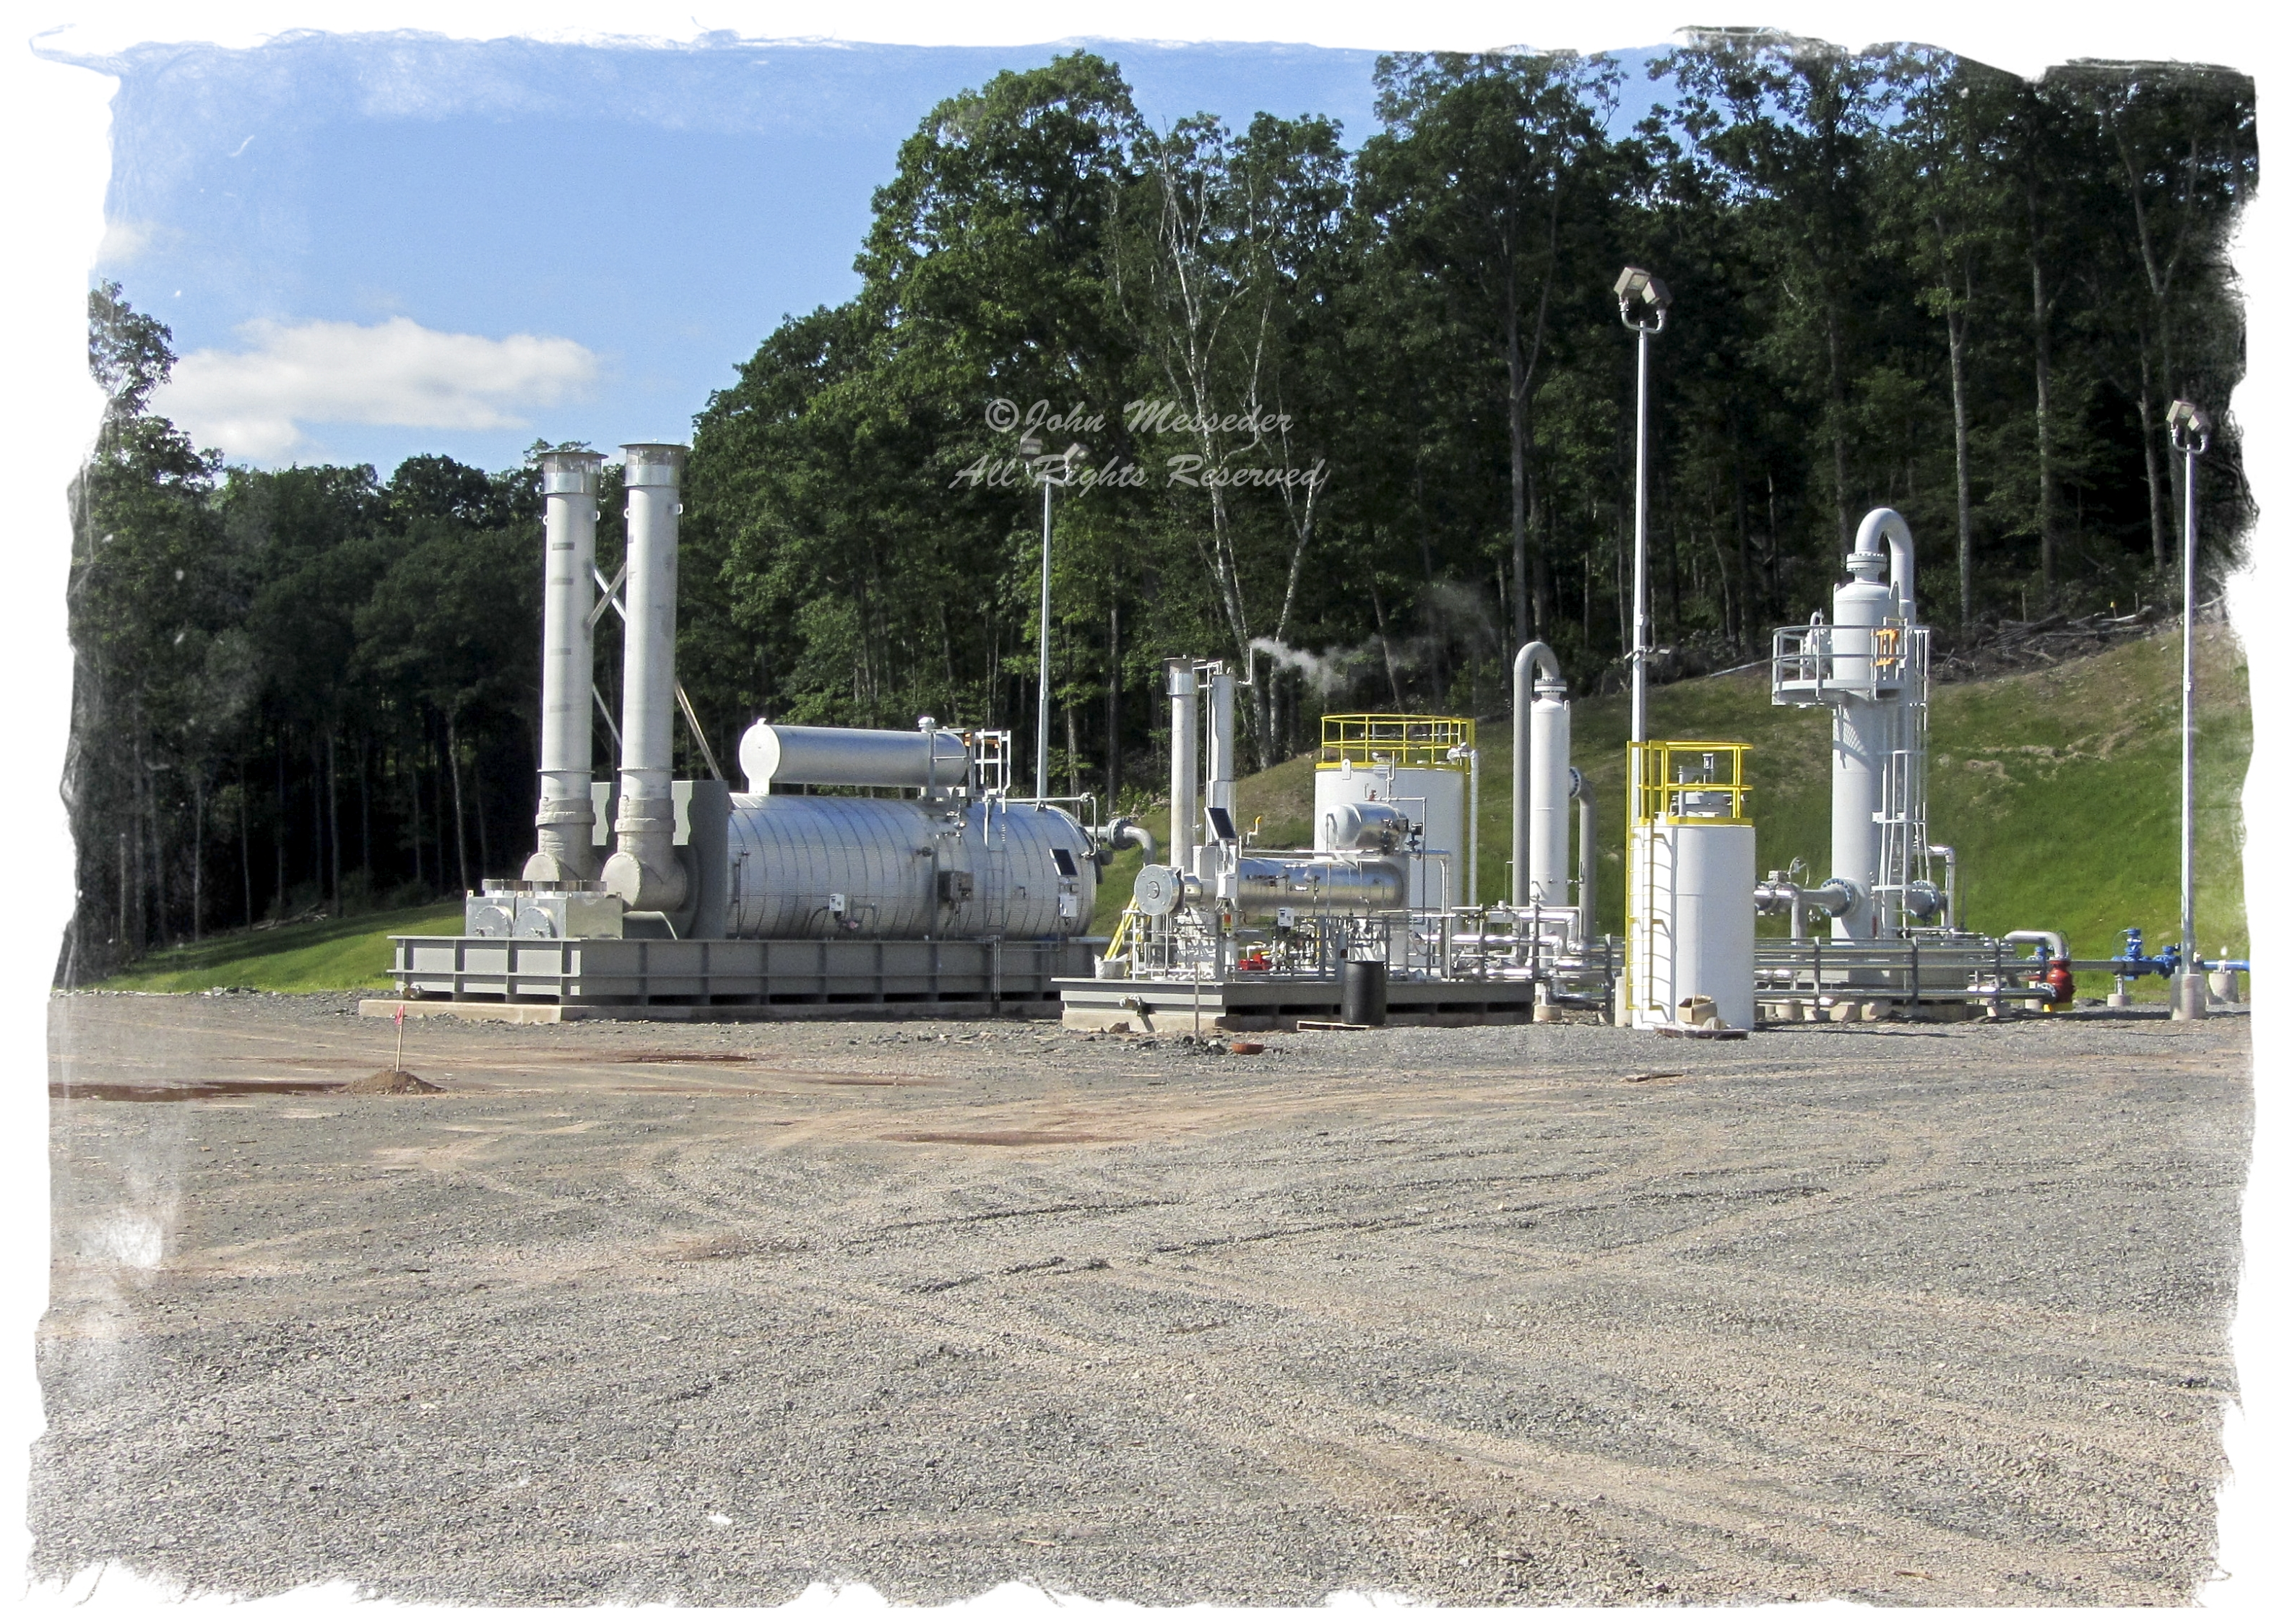 Hidden among the trees of PA forests, natural gas transport facilities push gas to export and methane to the air.